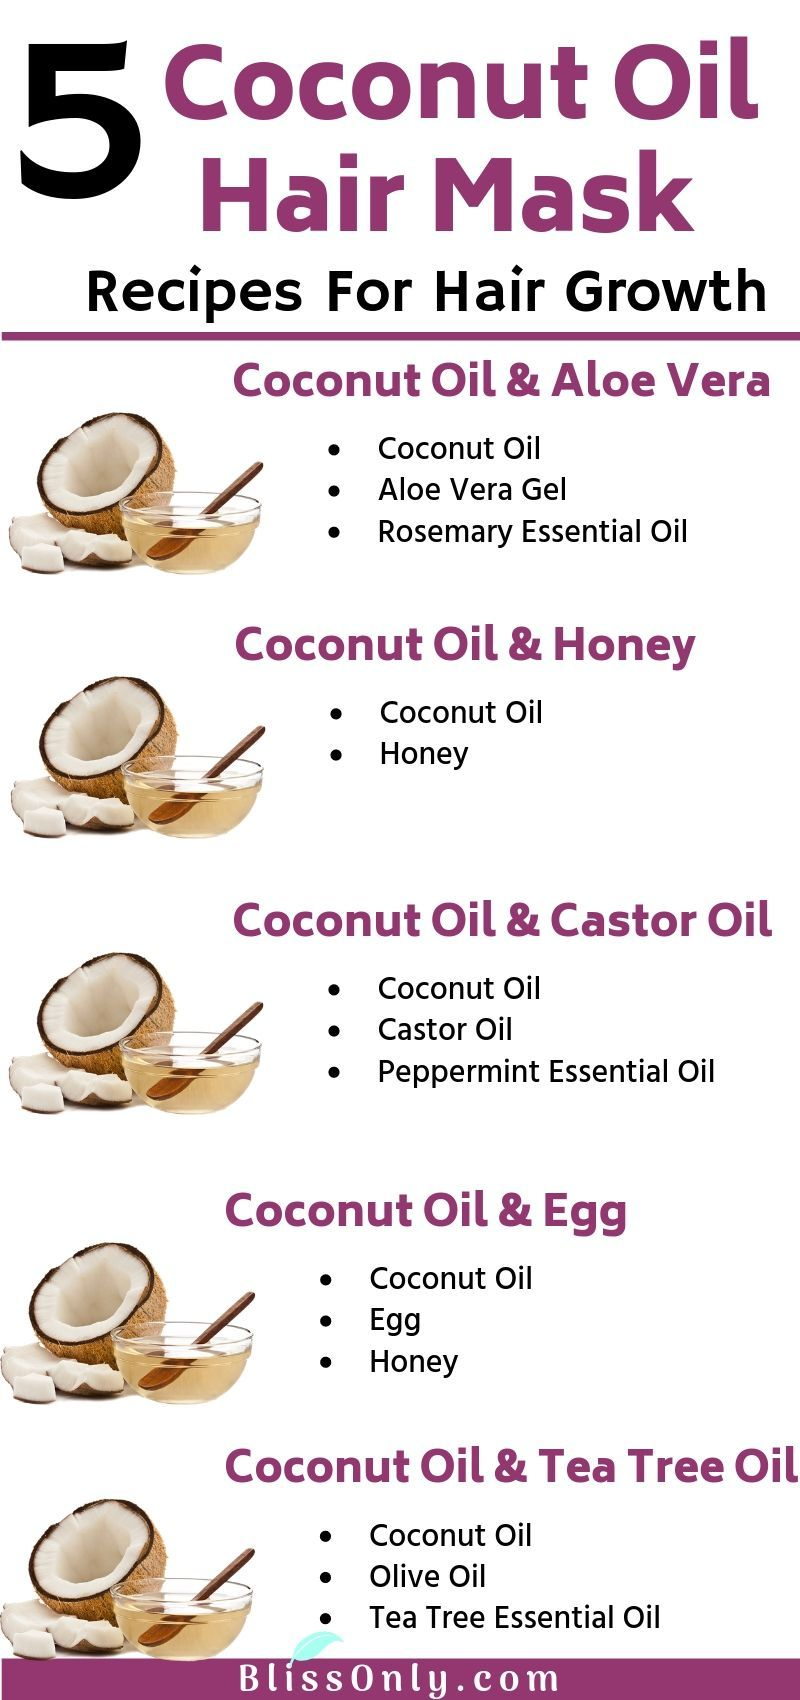 5 Best Coconut Oil Hair Mask For Hair Growth - BlissOnly